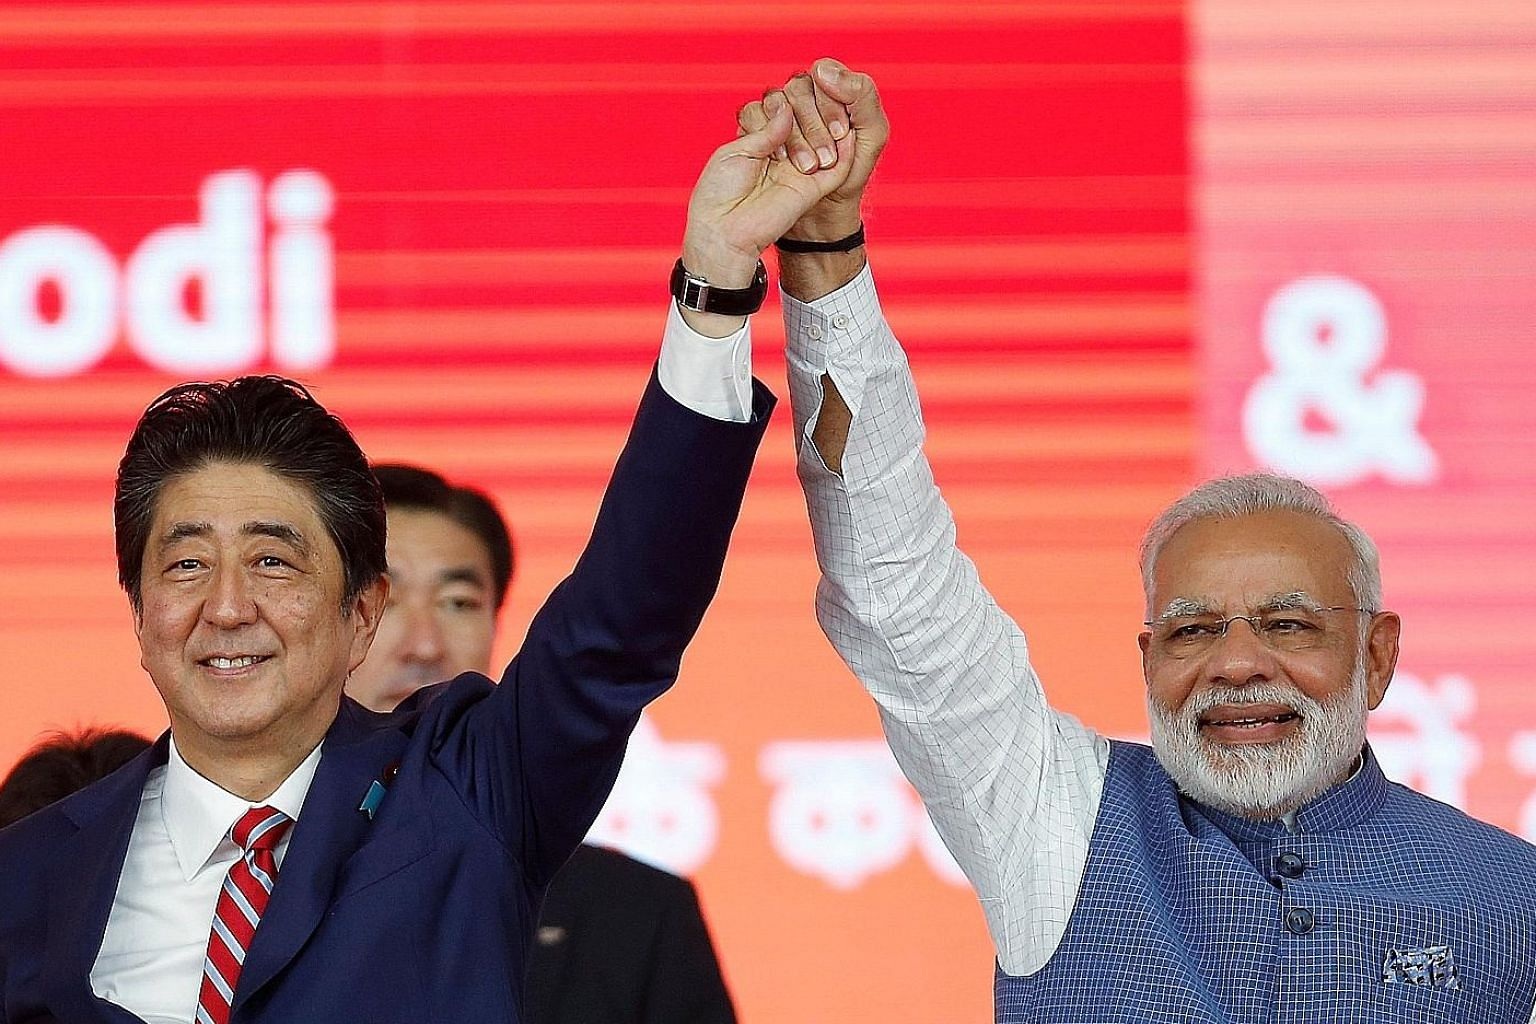 Japanese Prime Minister Shinzo Abe and his Indian counterpart, Mr Narendra Modi, after the ground-breaking ceremony for the high-speed rail project in Ahmedabad, India, yesterday. The $22.8 billion undertaking is expected to boost India's ageing rail